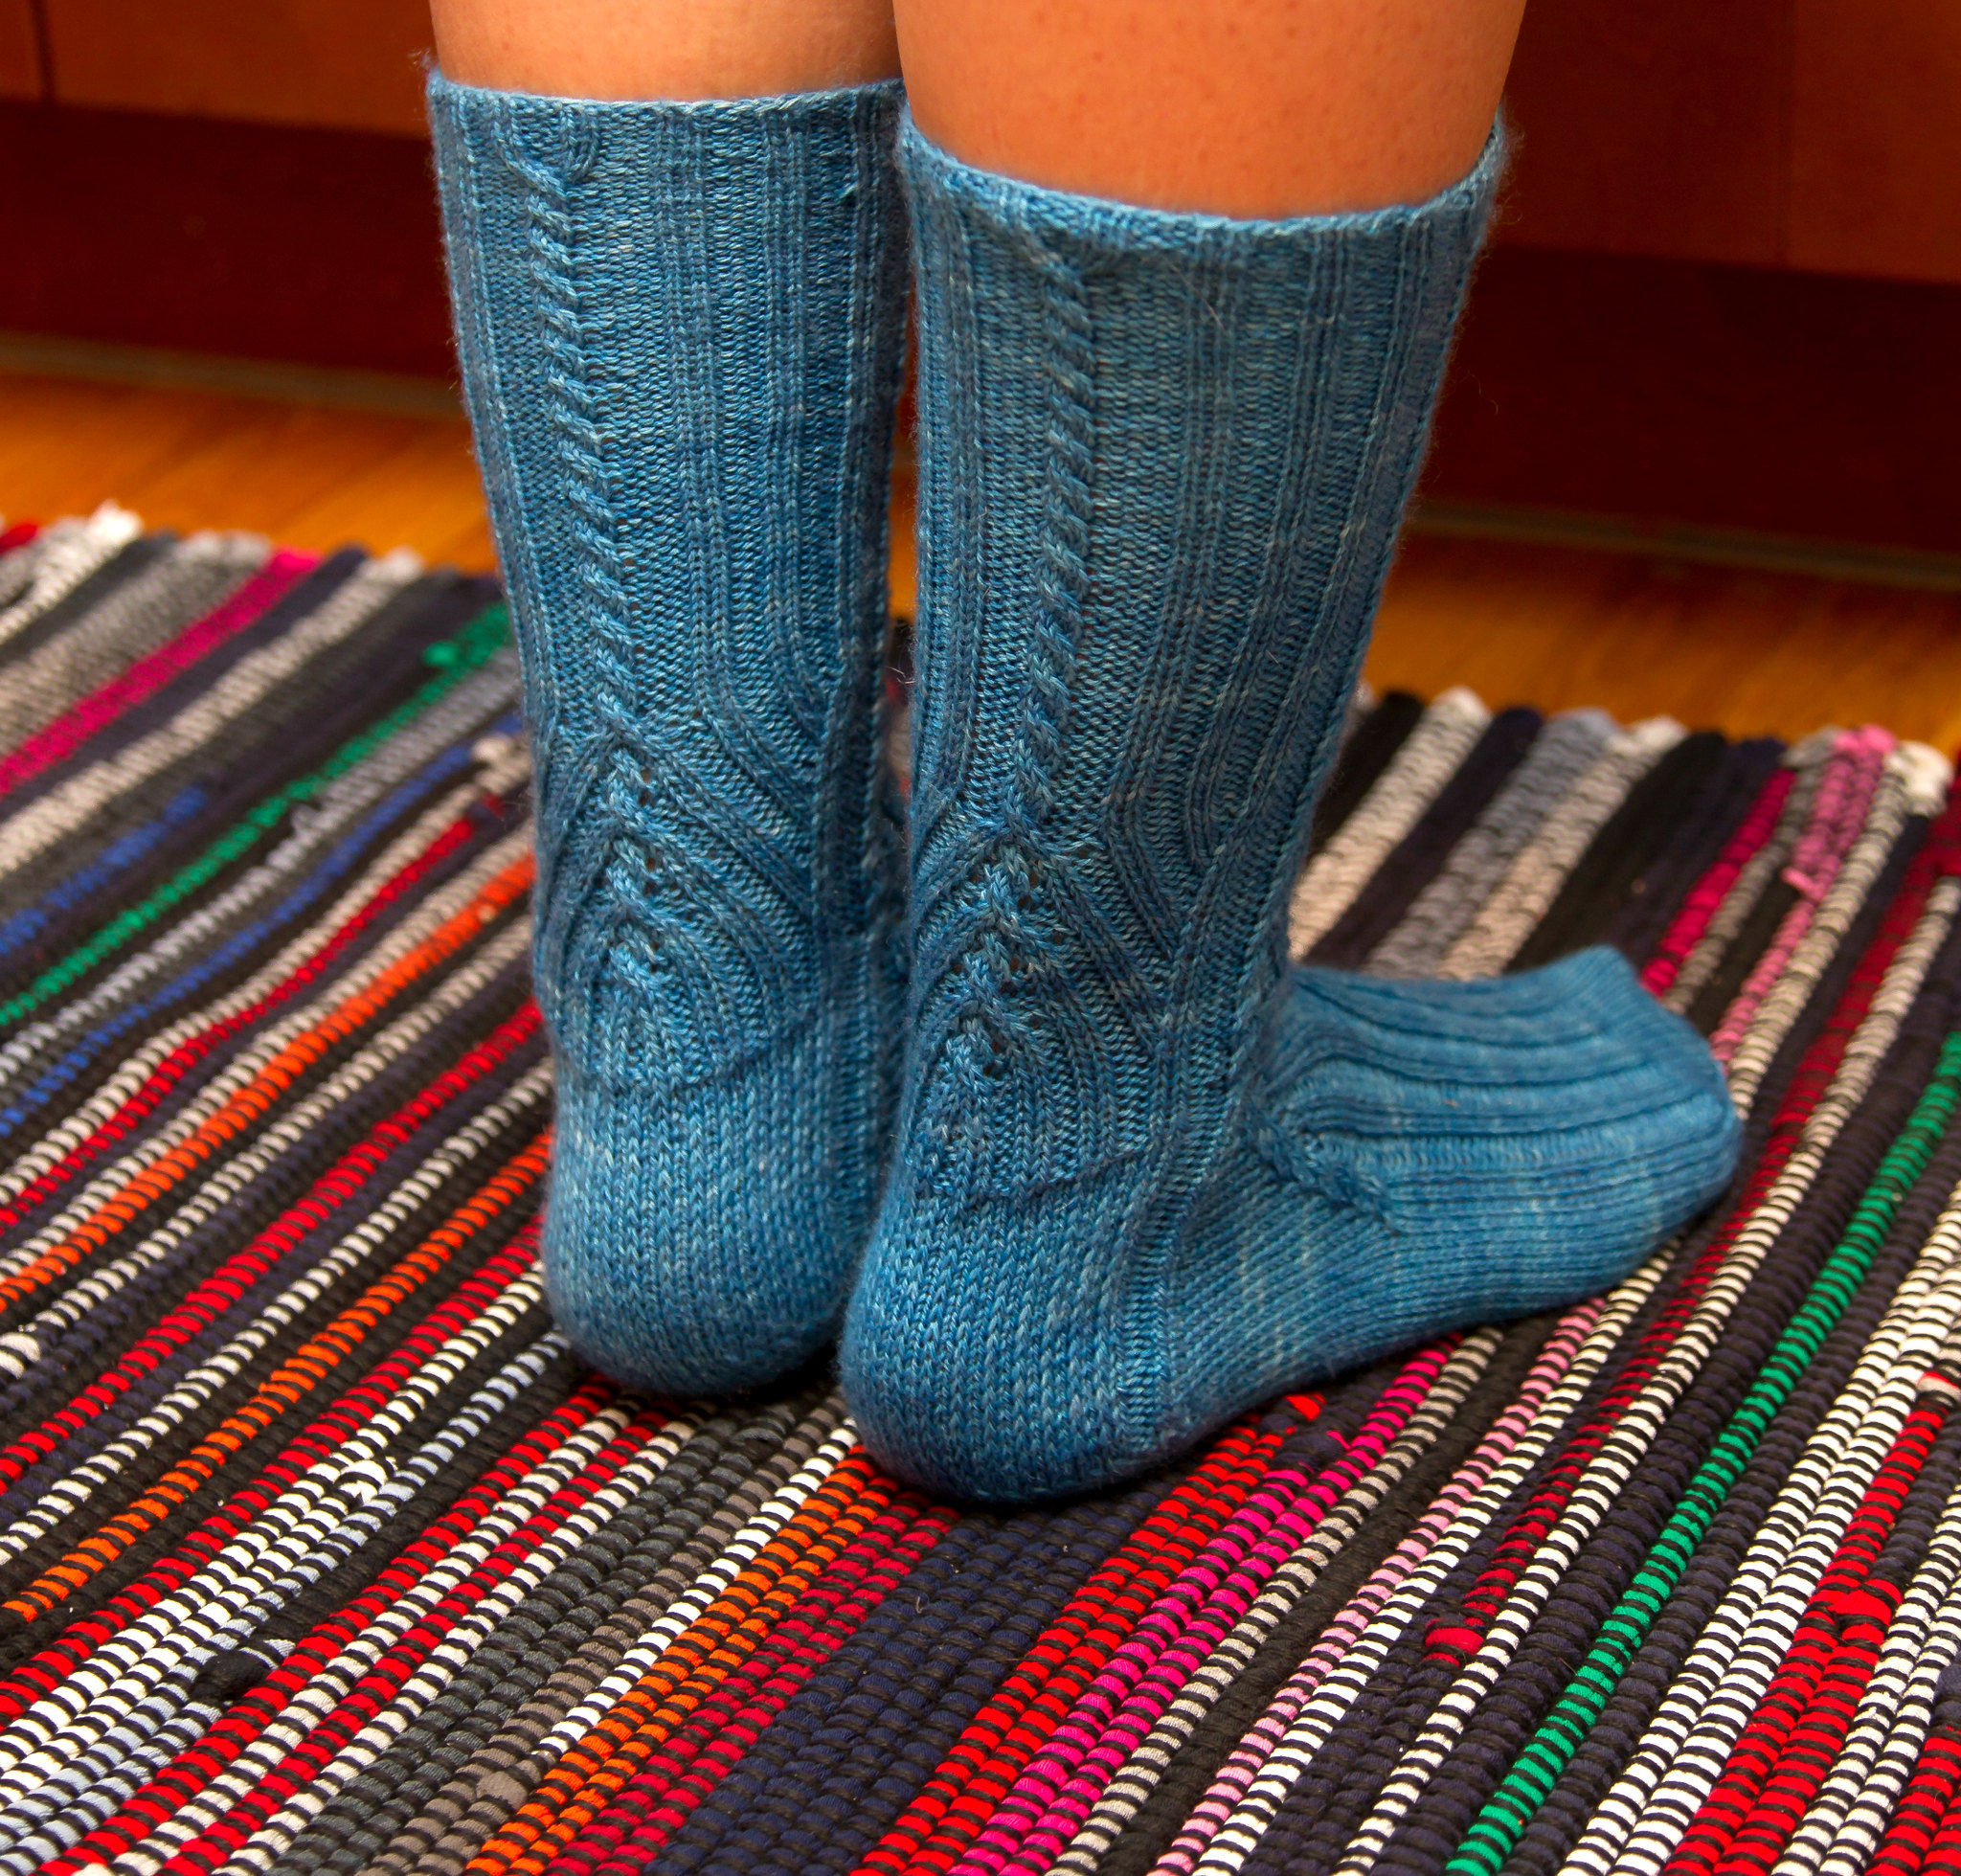 Manoa sock pattern